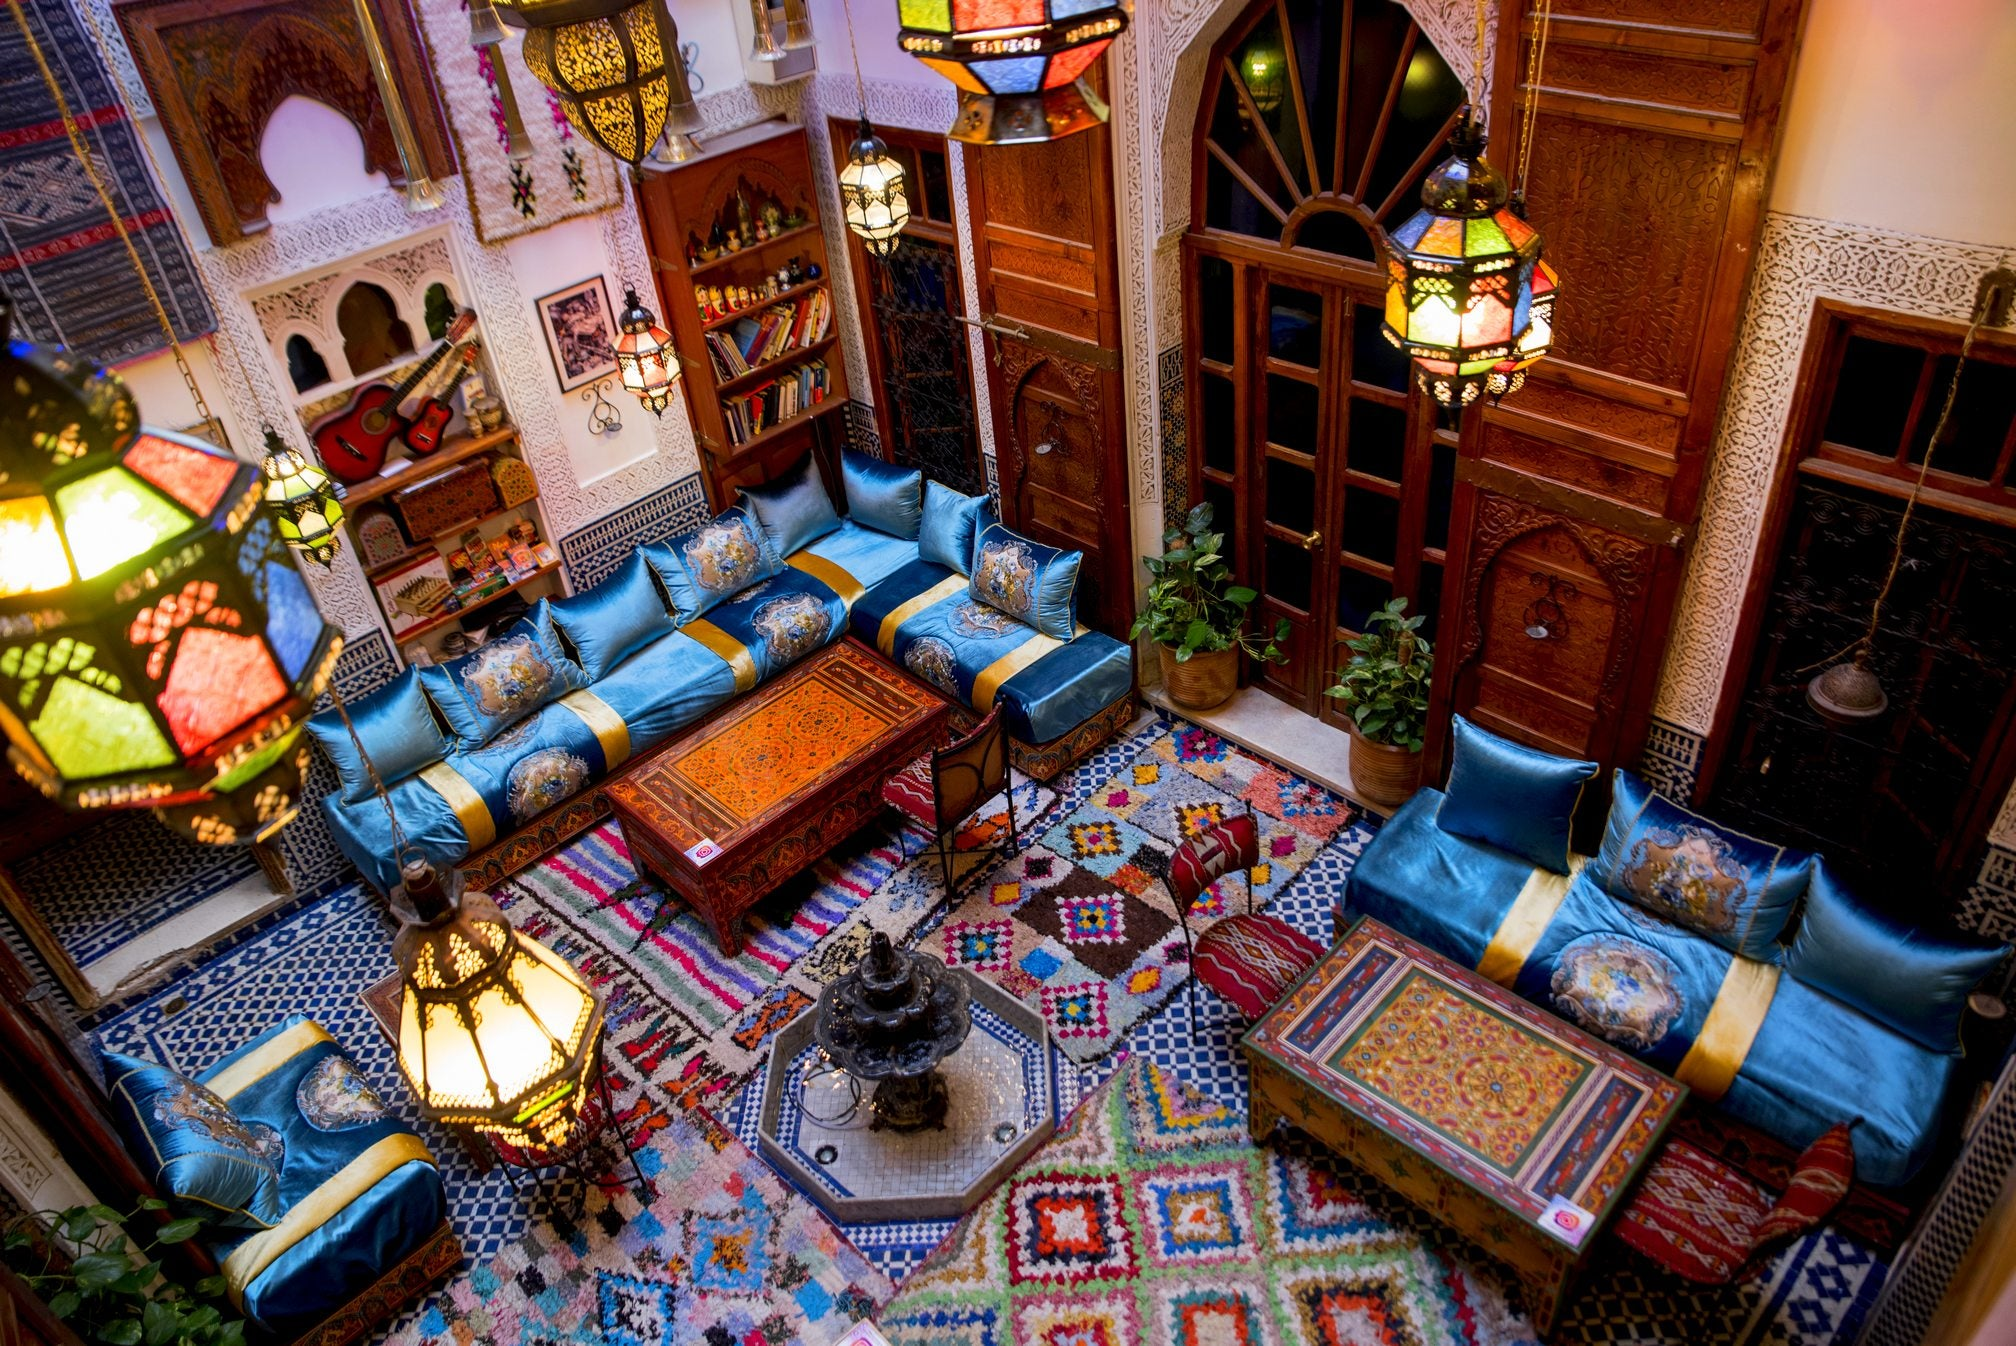 Berber riad with moroccan carpets